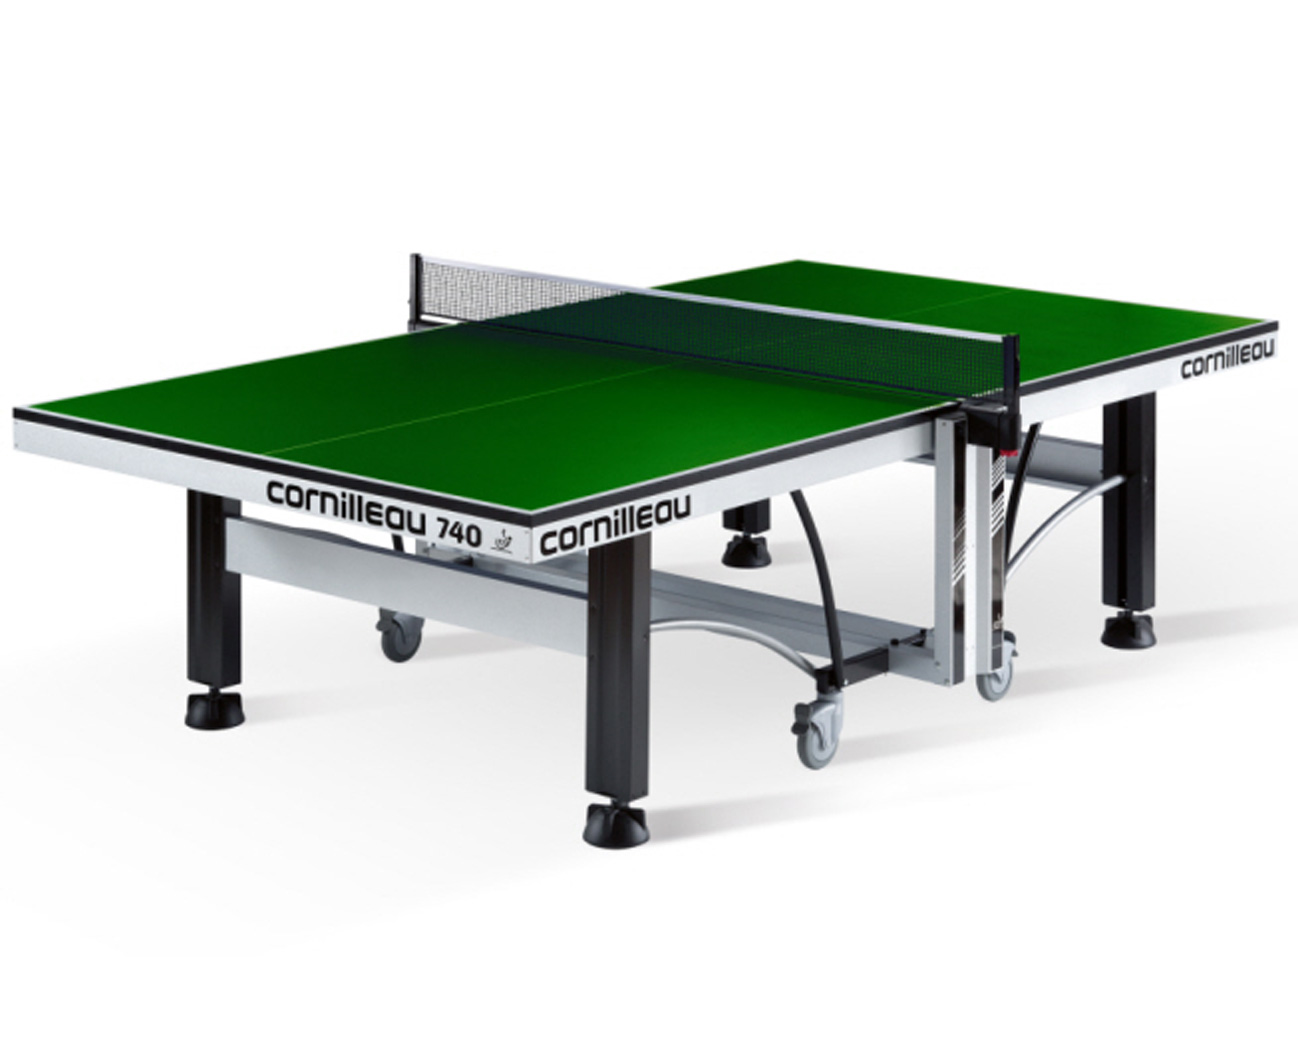 Cornilleau 740 ittf competition snooker pool table company ltd - Equipment for table tennis ...